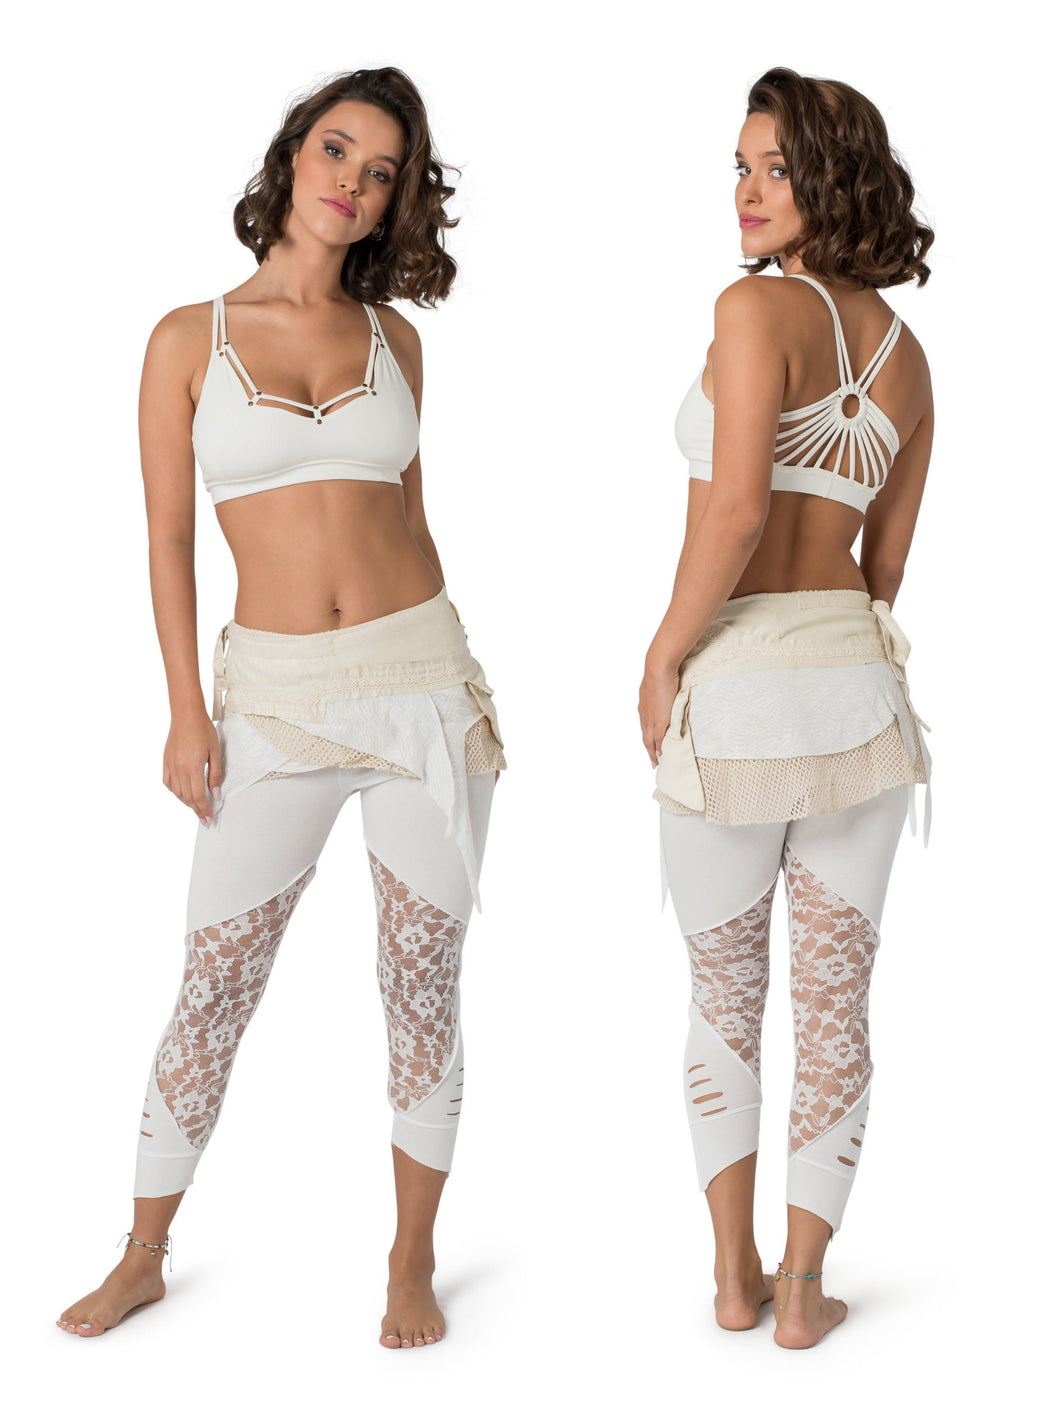 Activewear, Skirt and Leggings, White Outfit for Women, Yoga Wear, Pixie Skirt, Tribal Leggings, Festival Clothes, Belly Dance, Hippie Wear.